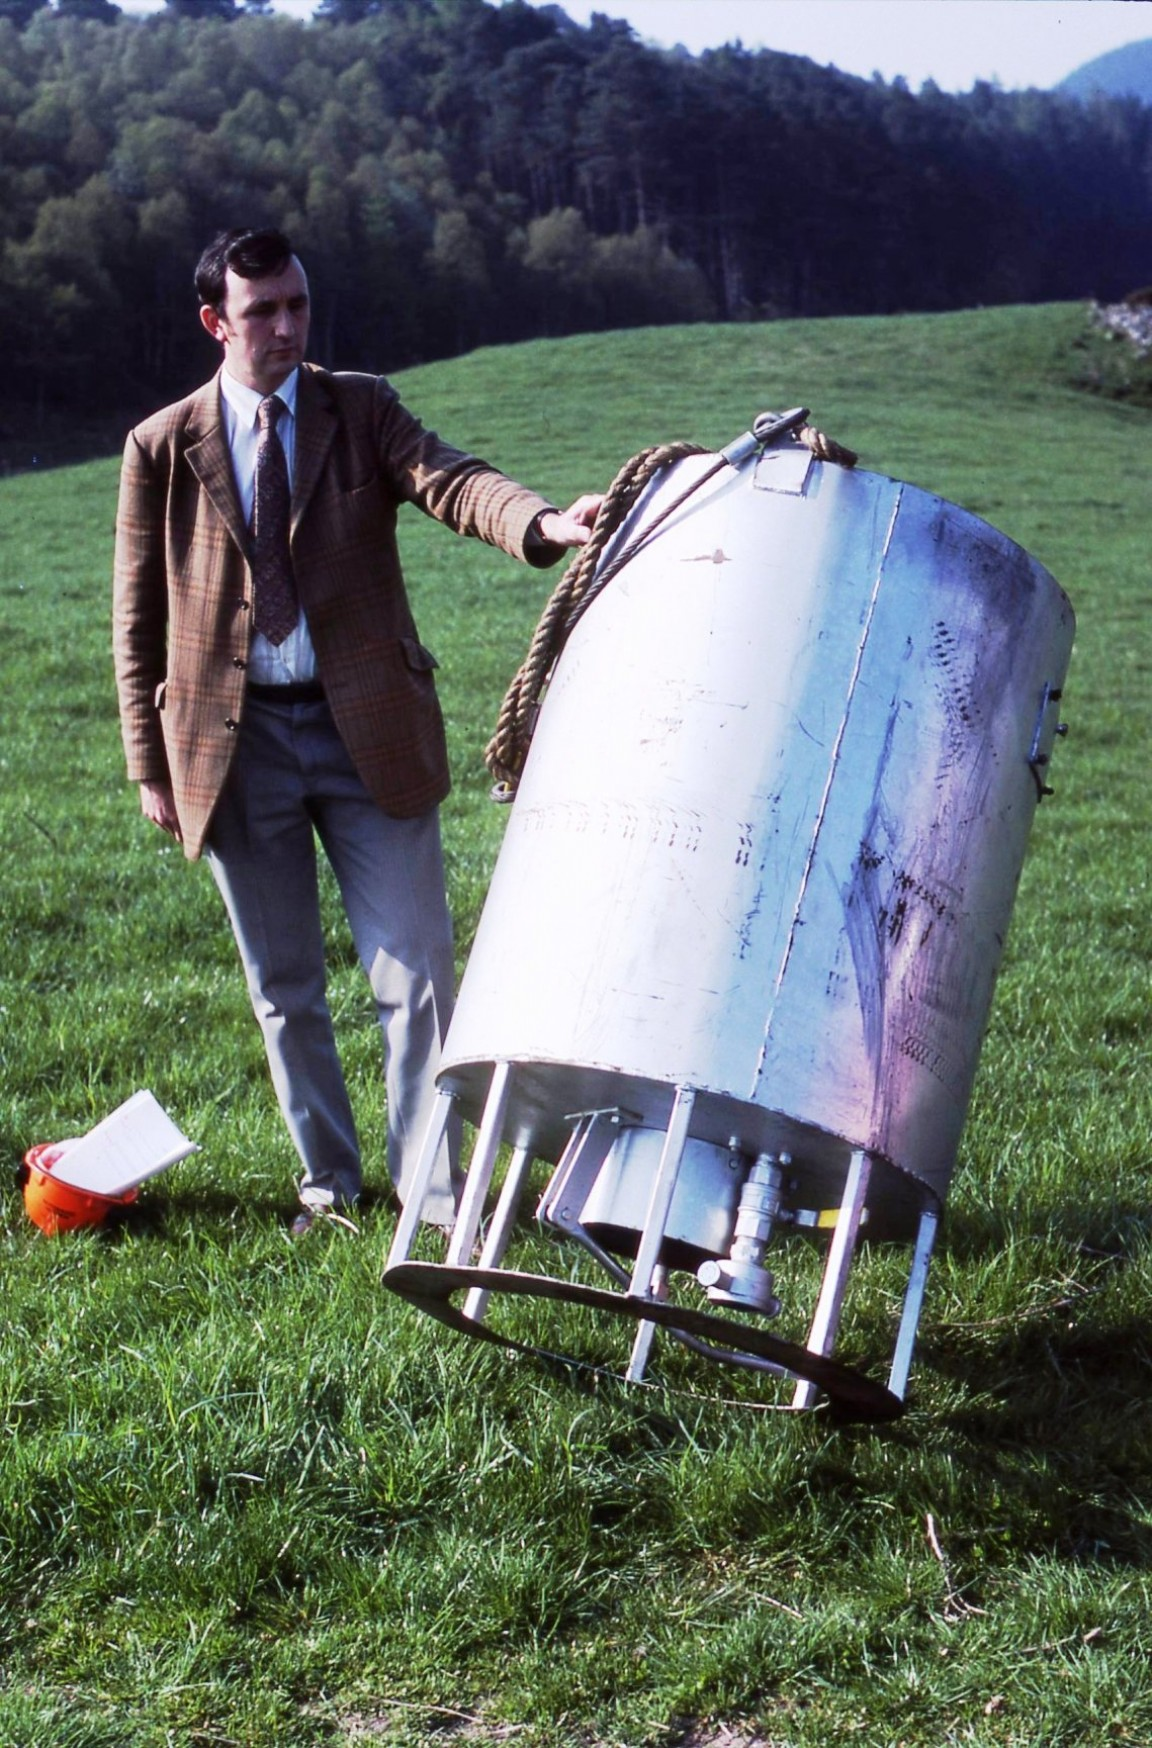 Helicopter bucket trial, 1984